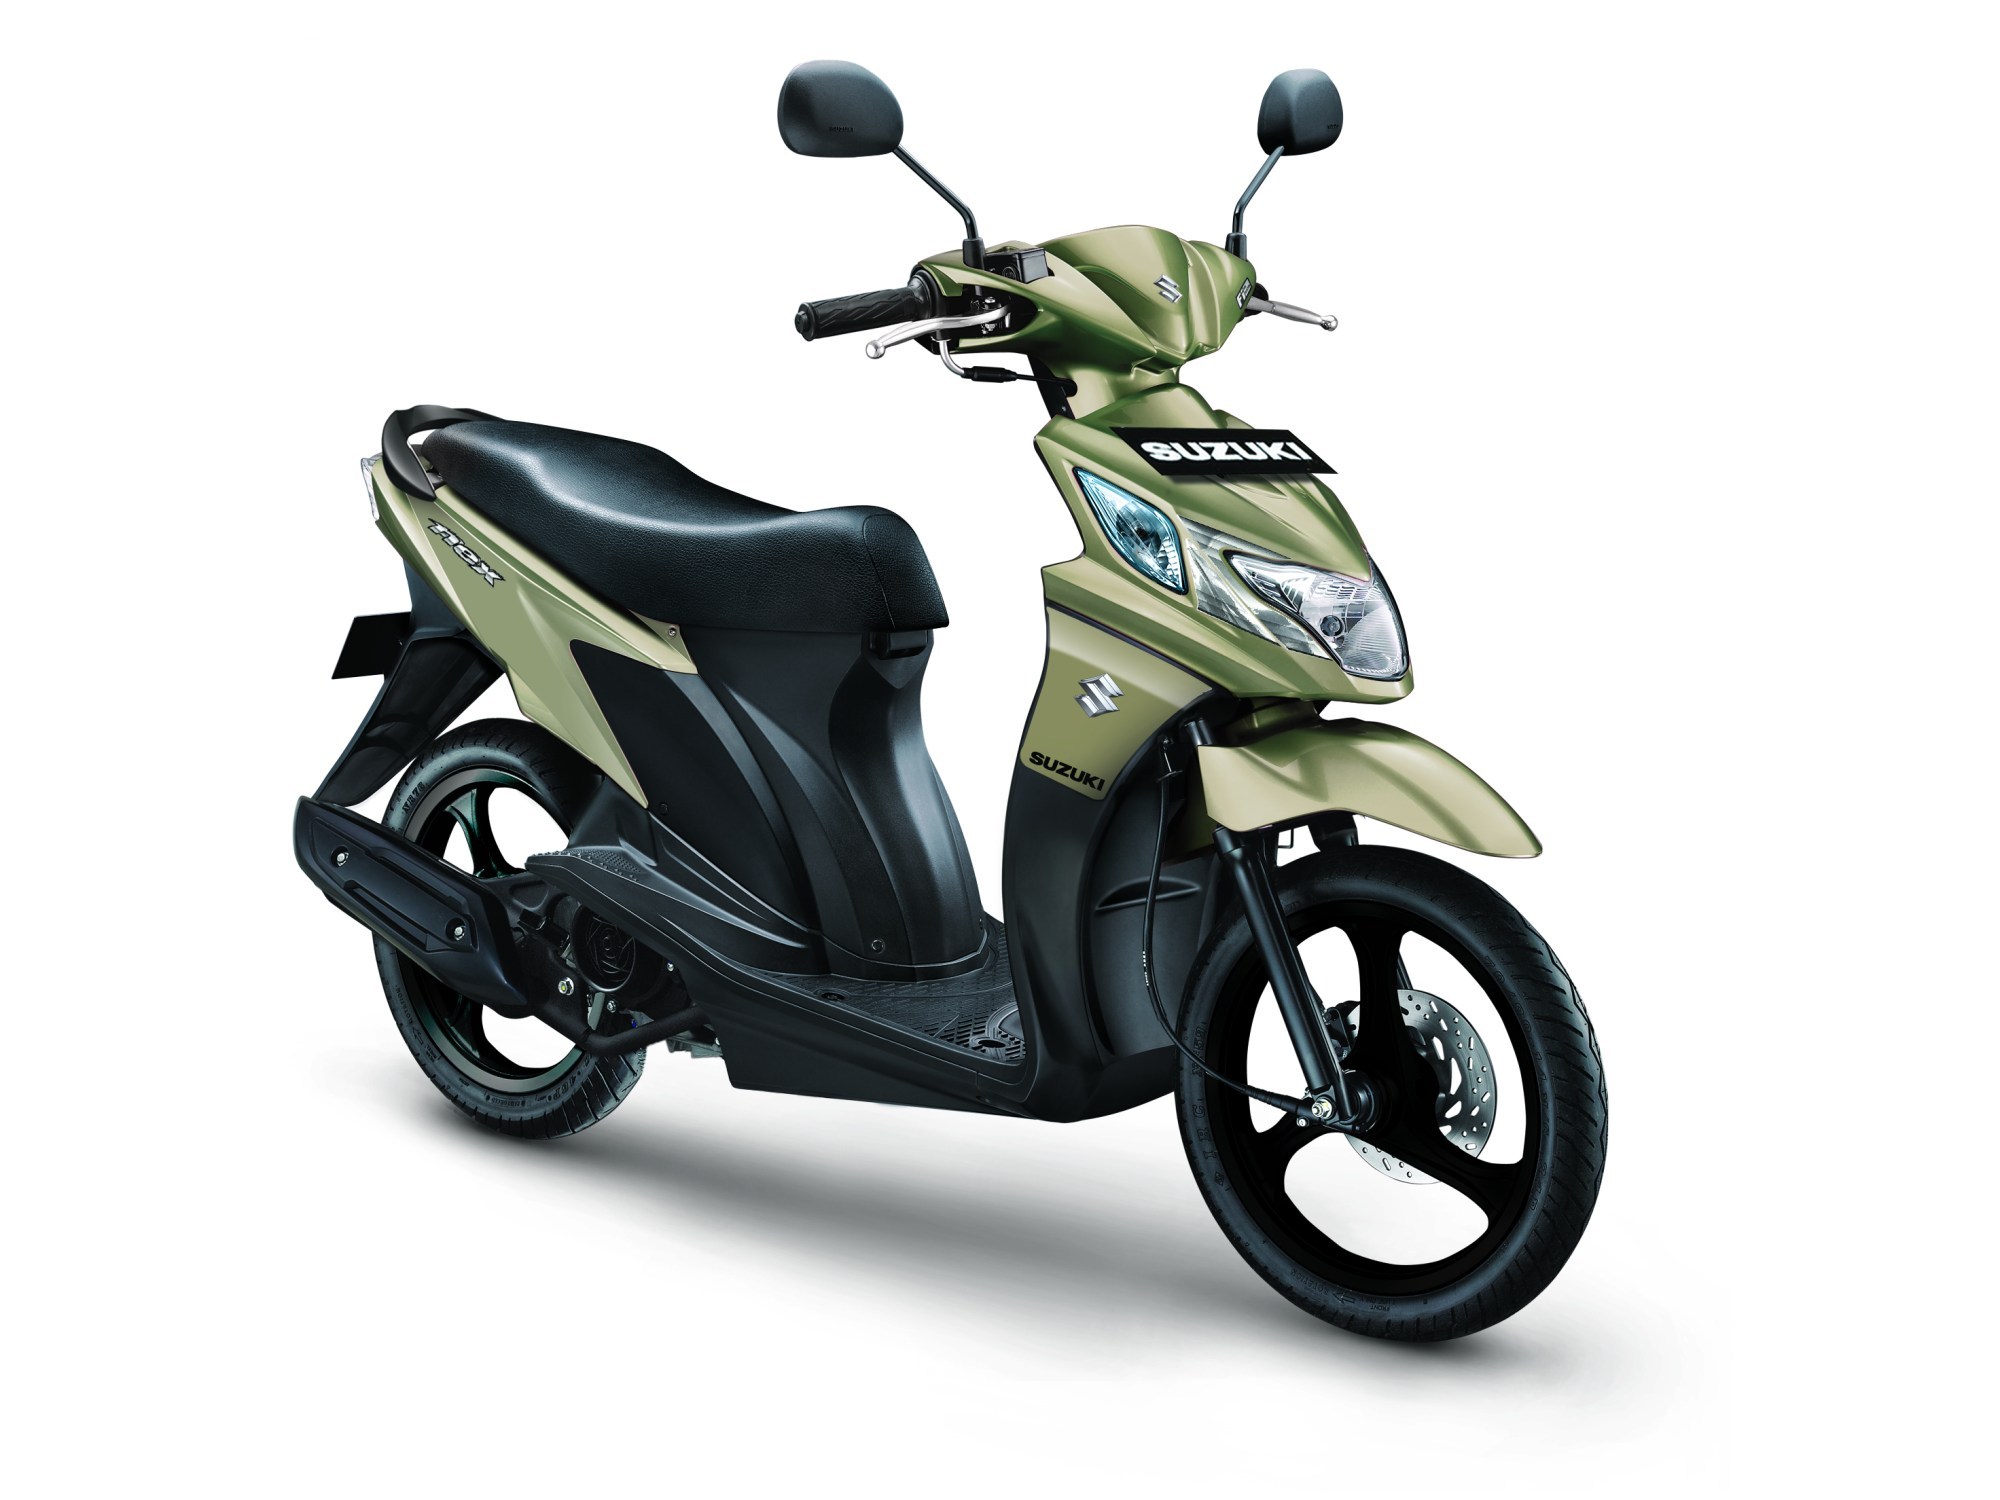 hight resolution of wiring diagram suzuki nex wiring librarysuzuki nex matik termurah di kelasnya dari suzuki